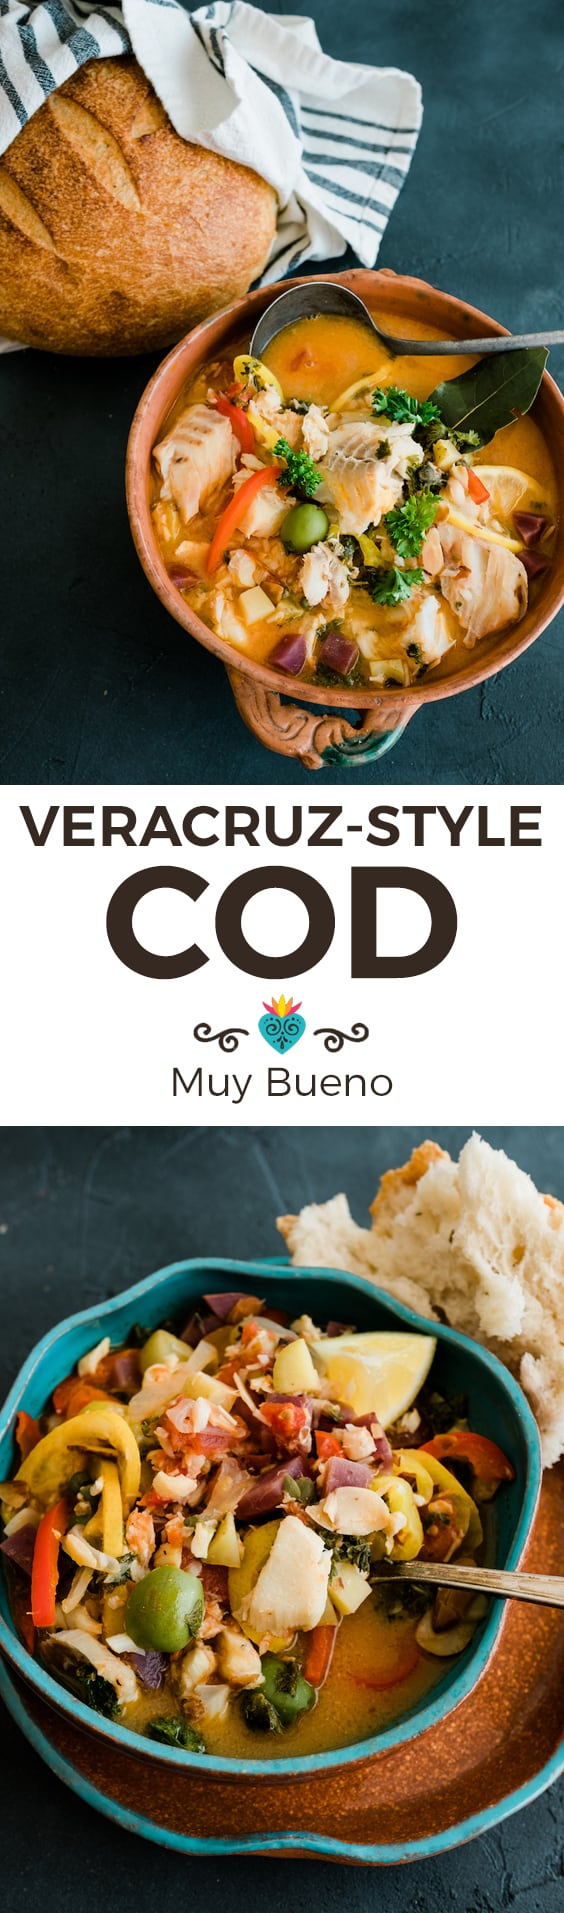 Veracruz-Style Cod super long collage with text overlay